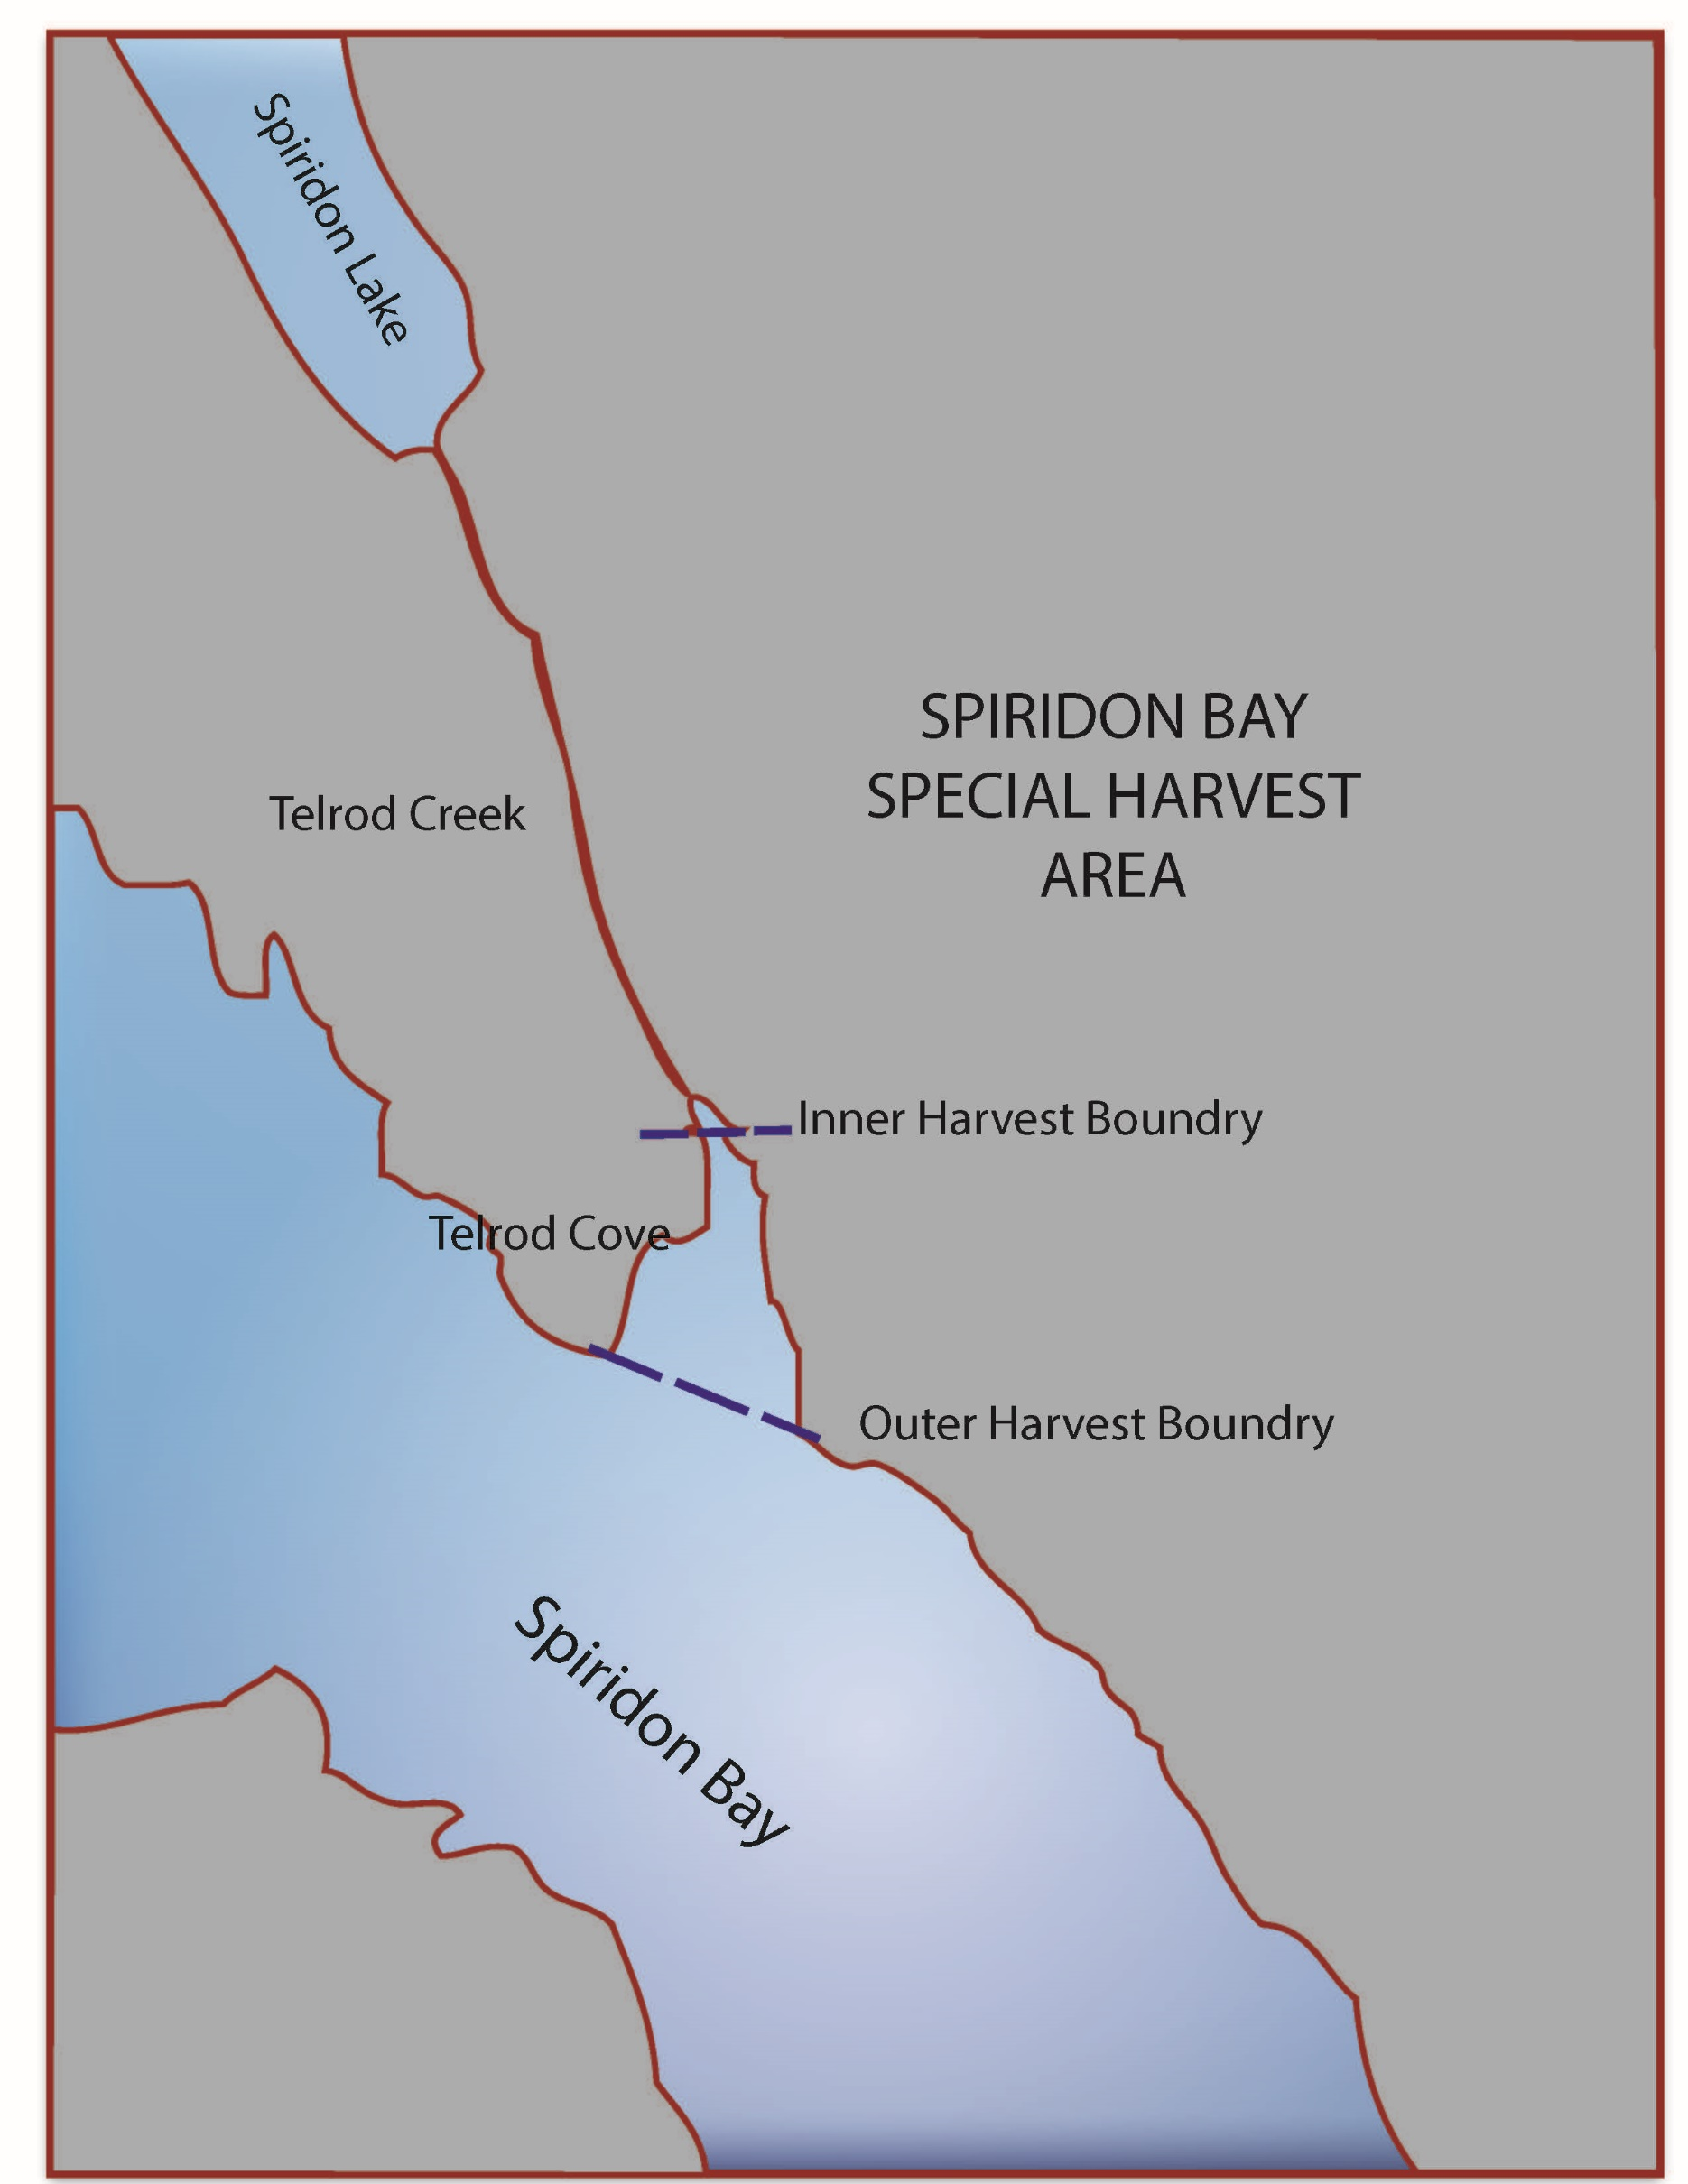 Spiridon Bay Special Harvest Area